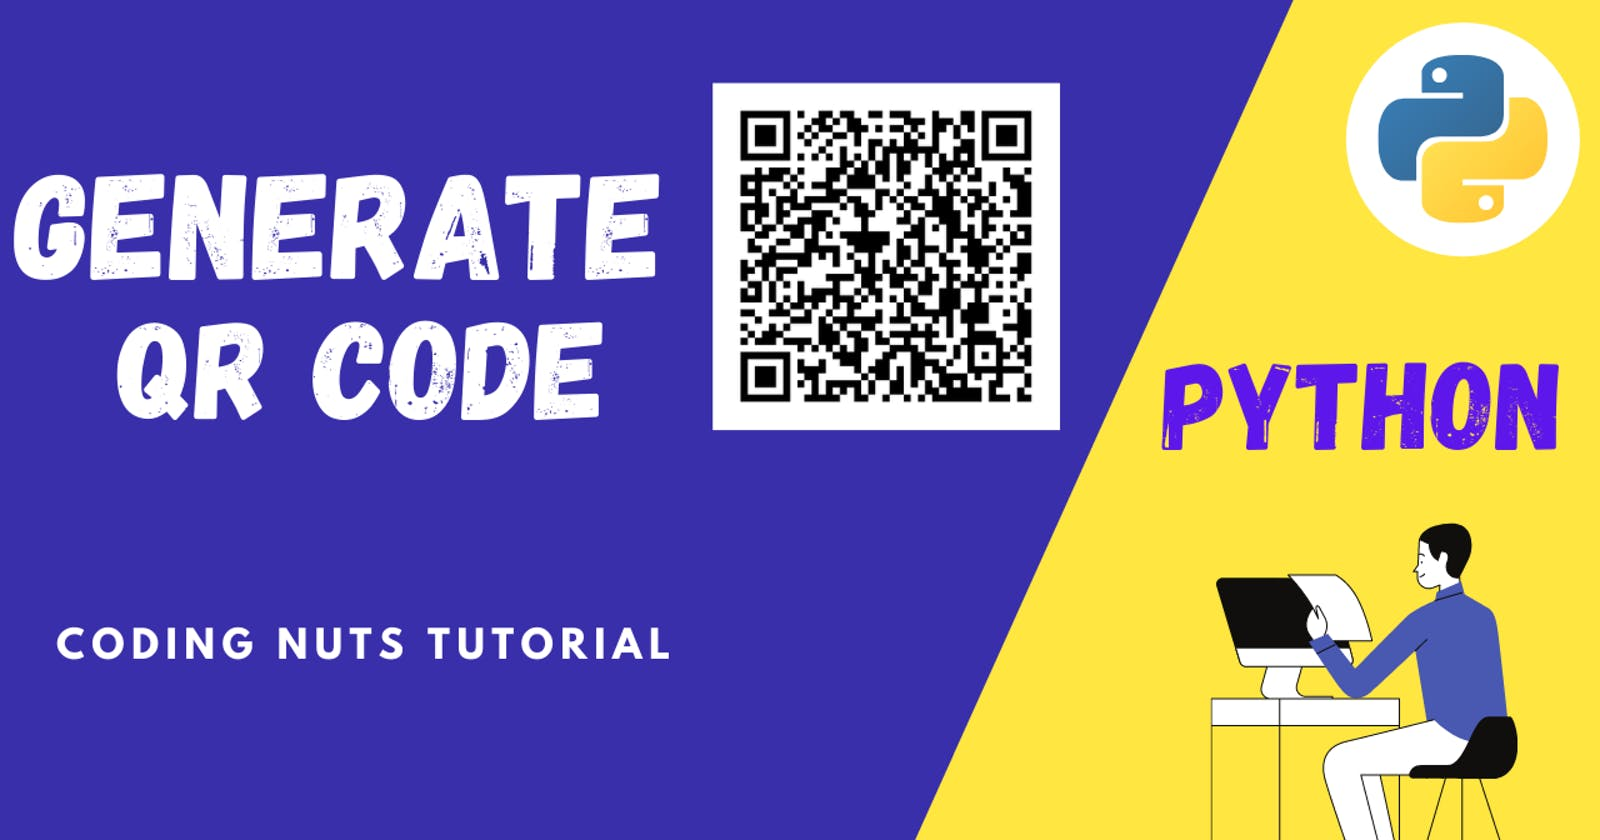 QR CODE IN 3 LINES OF PYTHON CODE | Generate And Access QR Code Easily